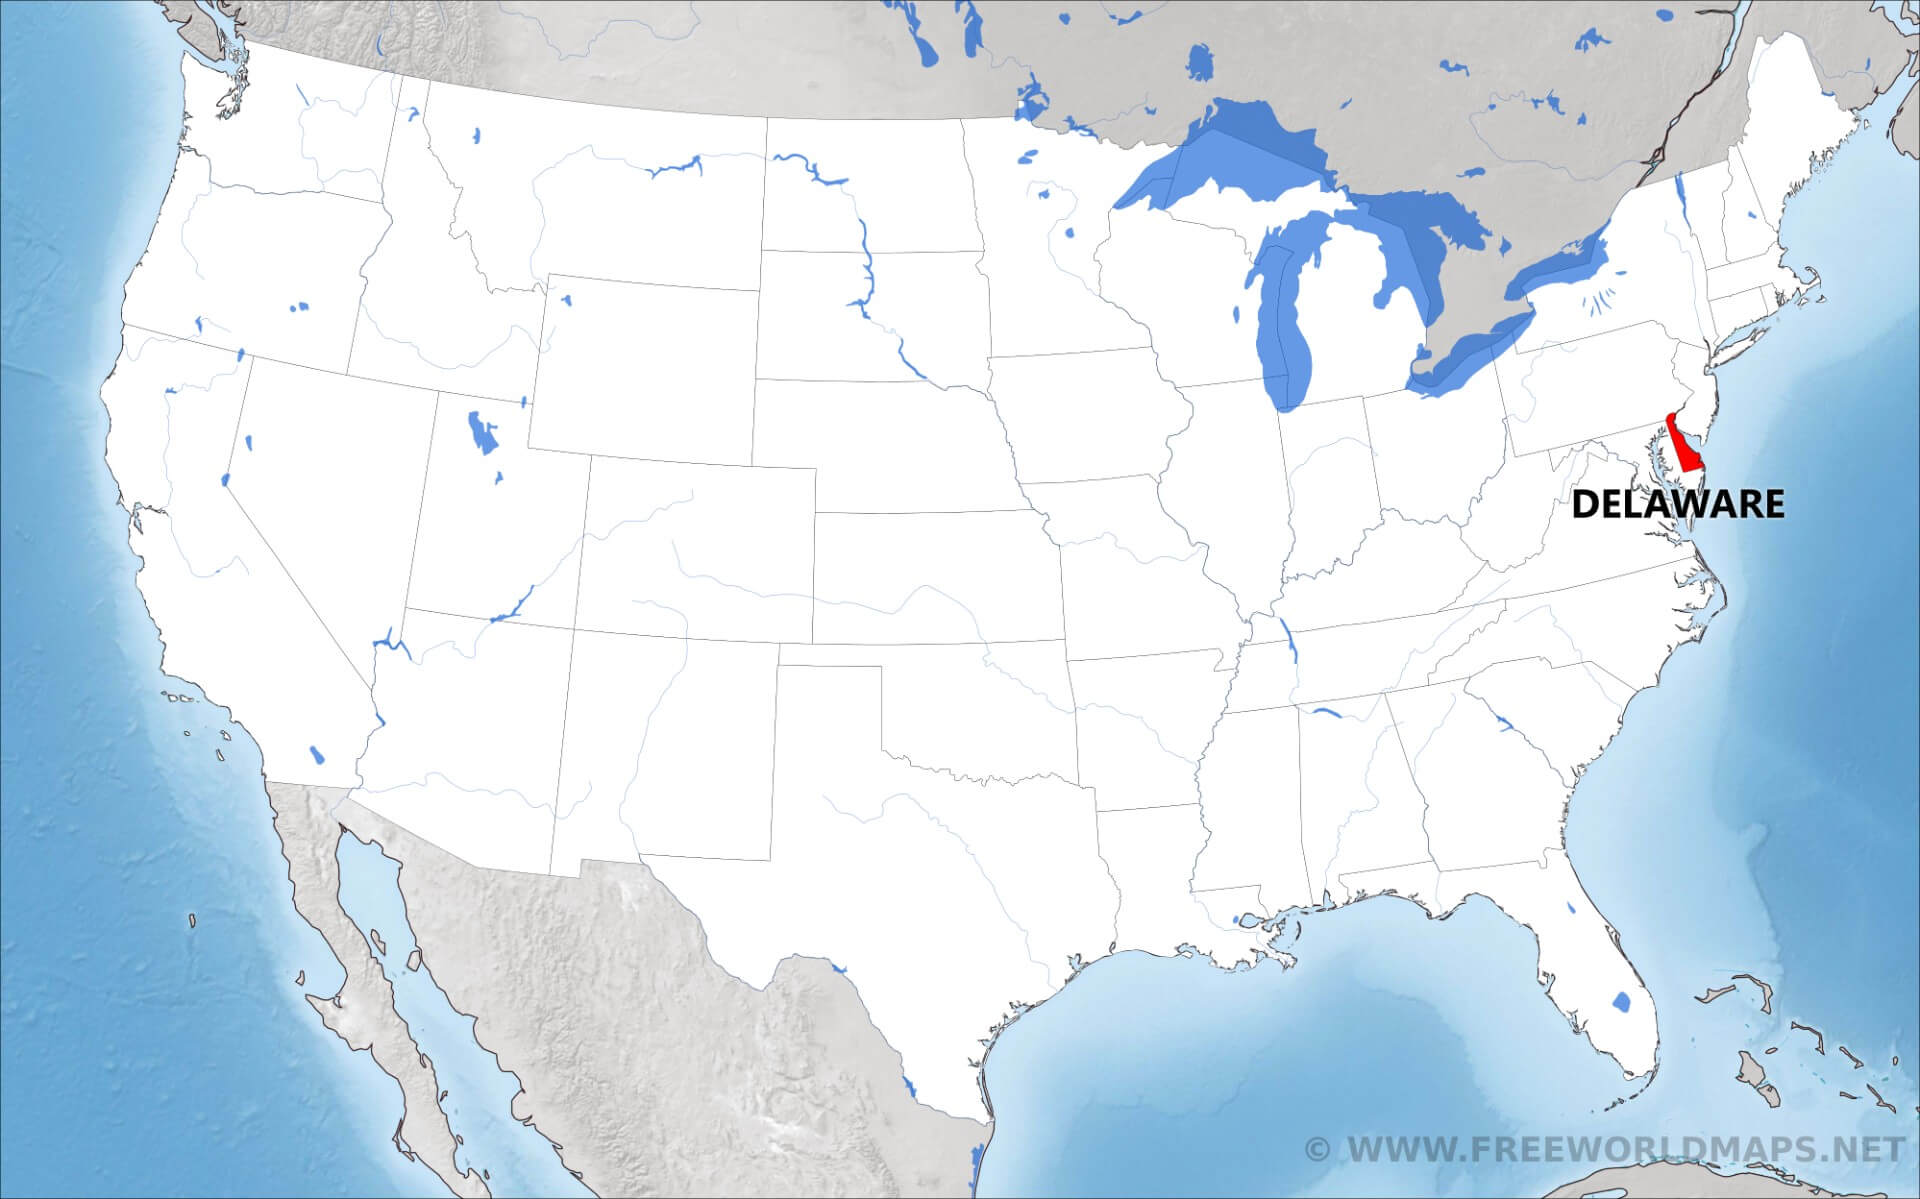 Where is Delaware located on the map? on mississippi map, georgia map, north carolina map, nova scotia map, michigan map, south carolina map, kansas map, idaho map, new england map, wisconsin map, ohio map, maine map, dc map, usa map, connecticut map, iowa map, pennsylvania map, nevada map, illinois map, us state map, rhode island map, virginia map, minnesota map, florida map, louisiana map, maryland map, utah map, missouri map, montana map, indiana map, texas map, new york map, kentucky map,